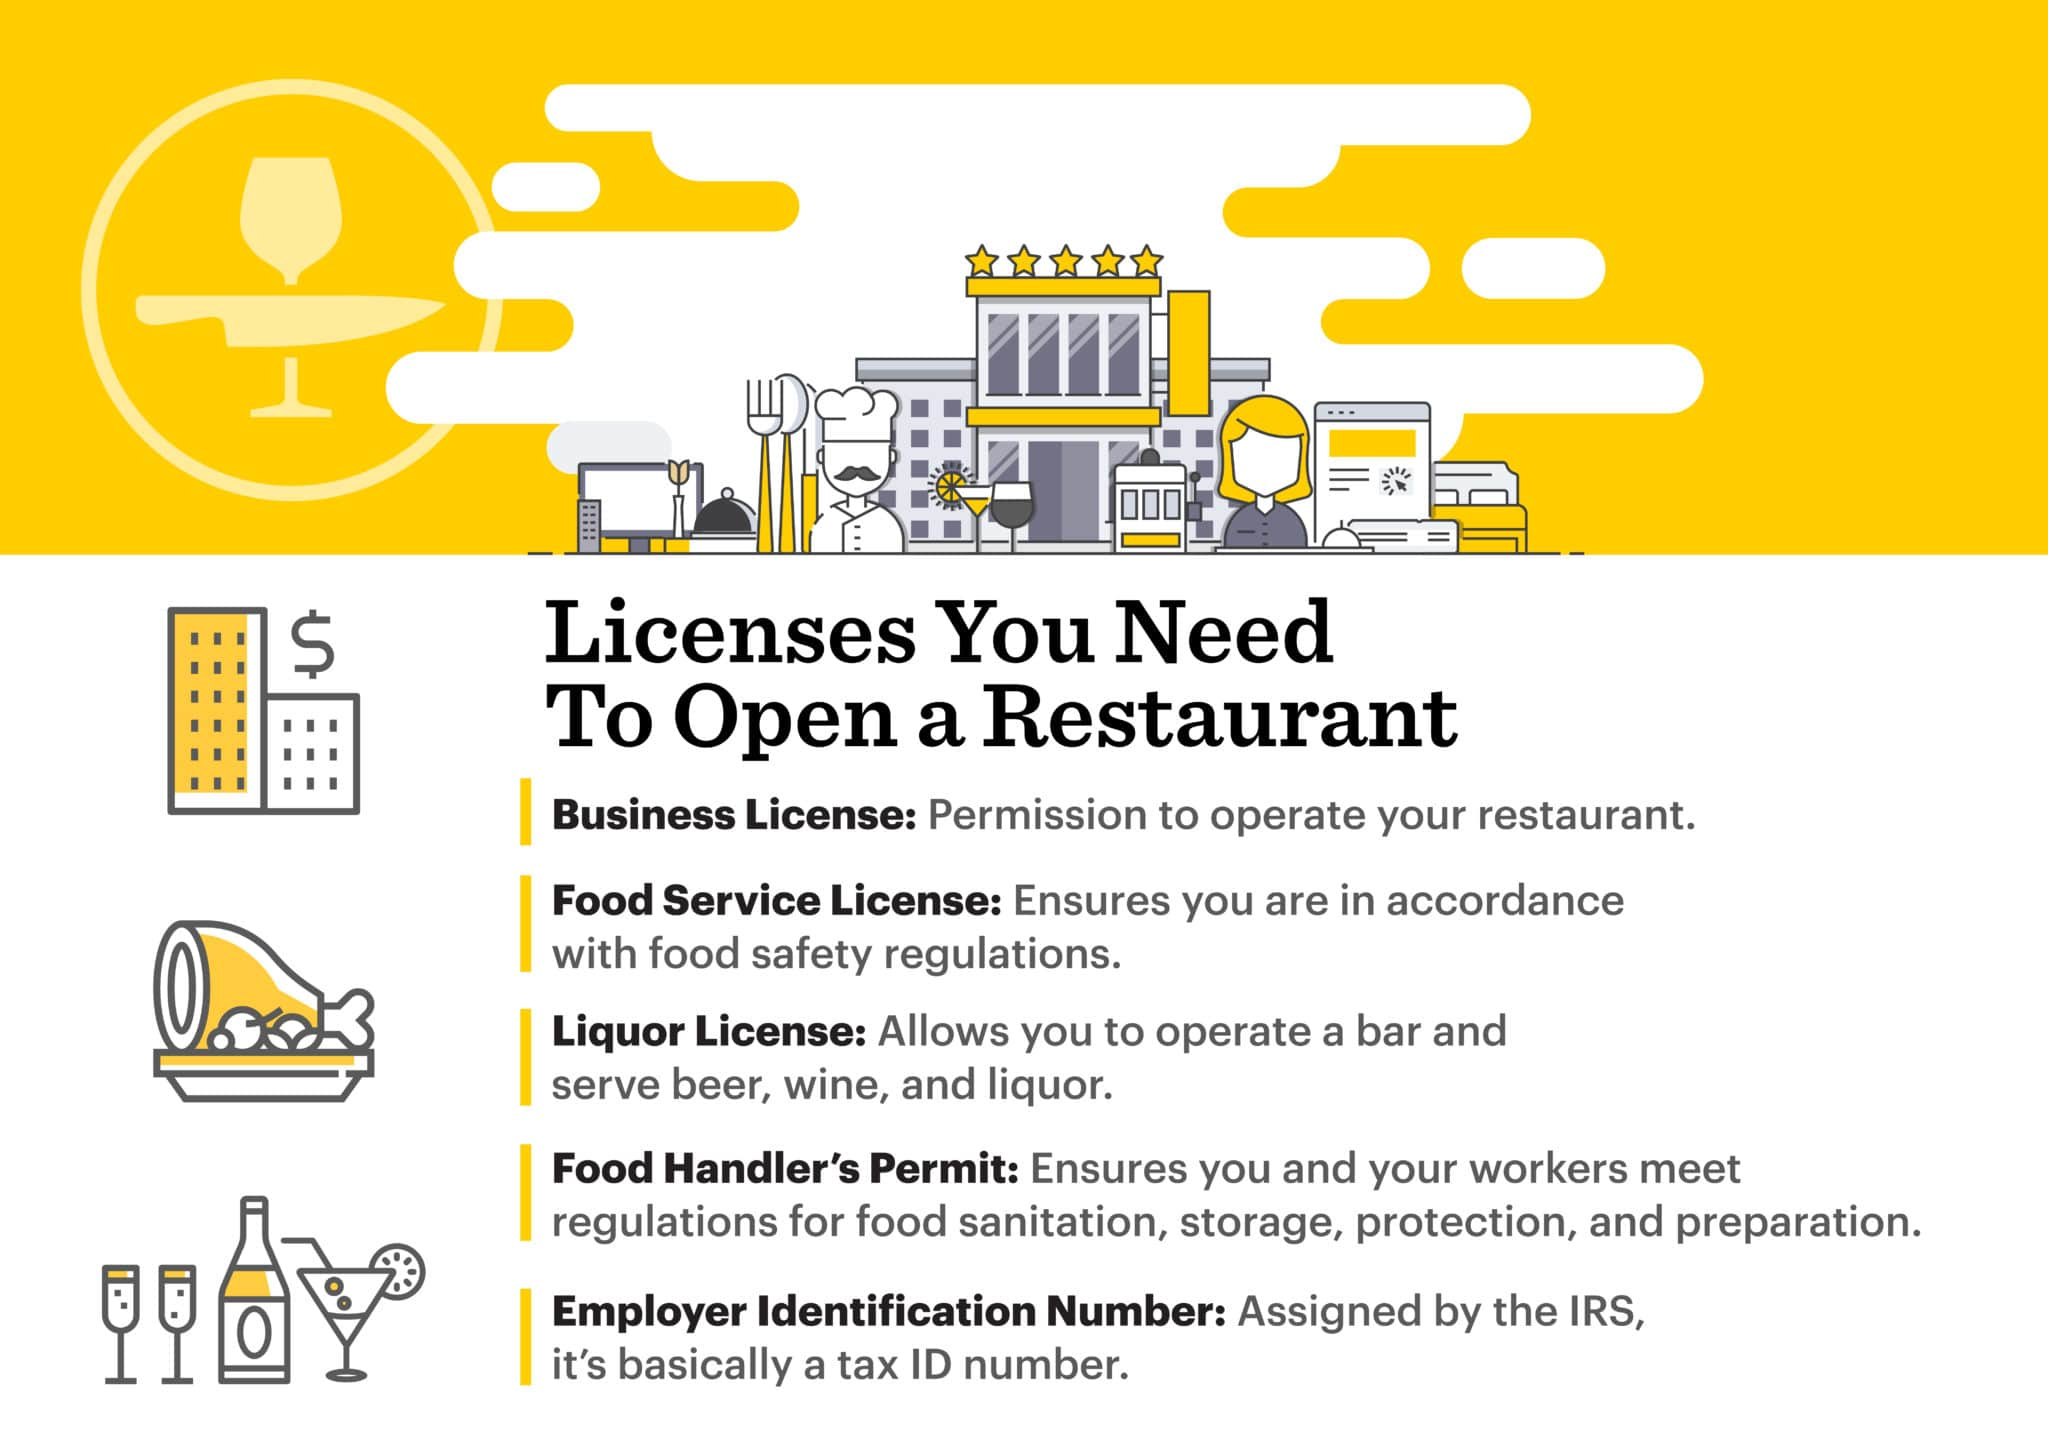 Restaurant Licenses And Permits You Need To Open